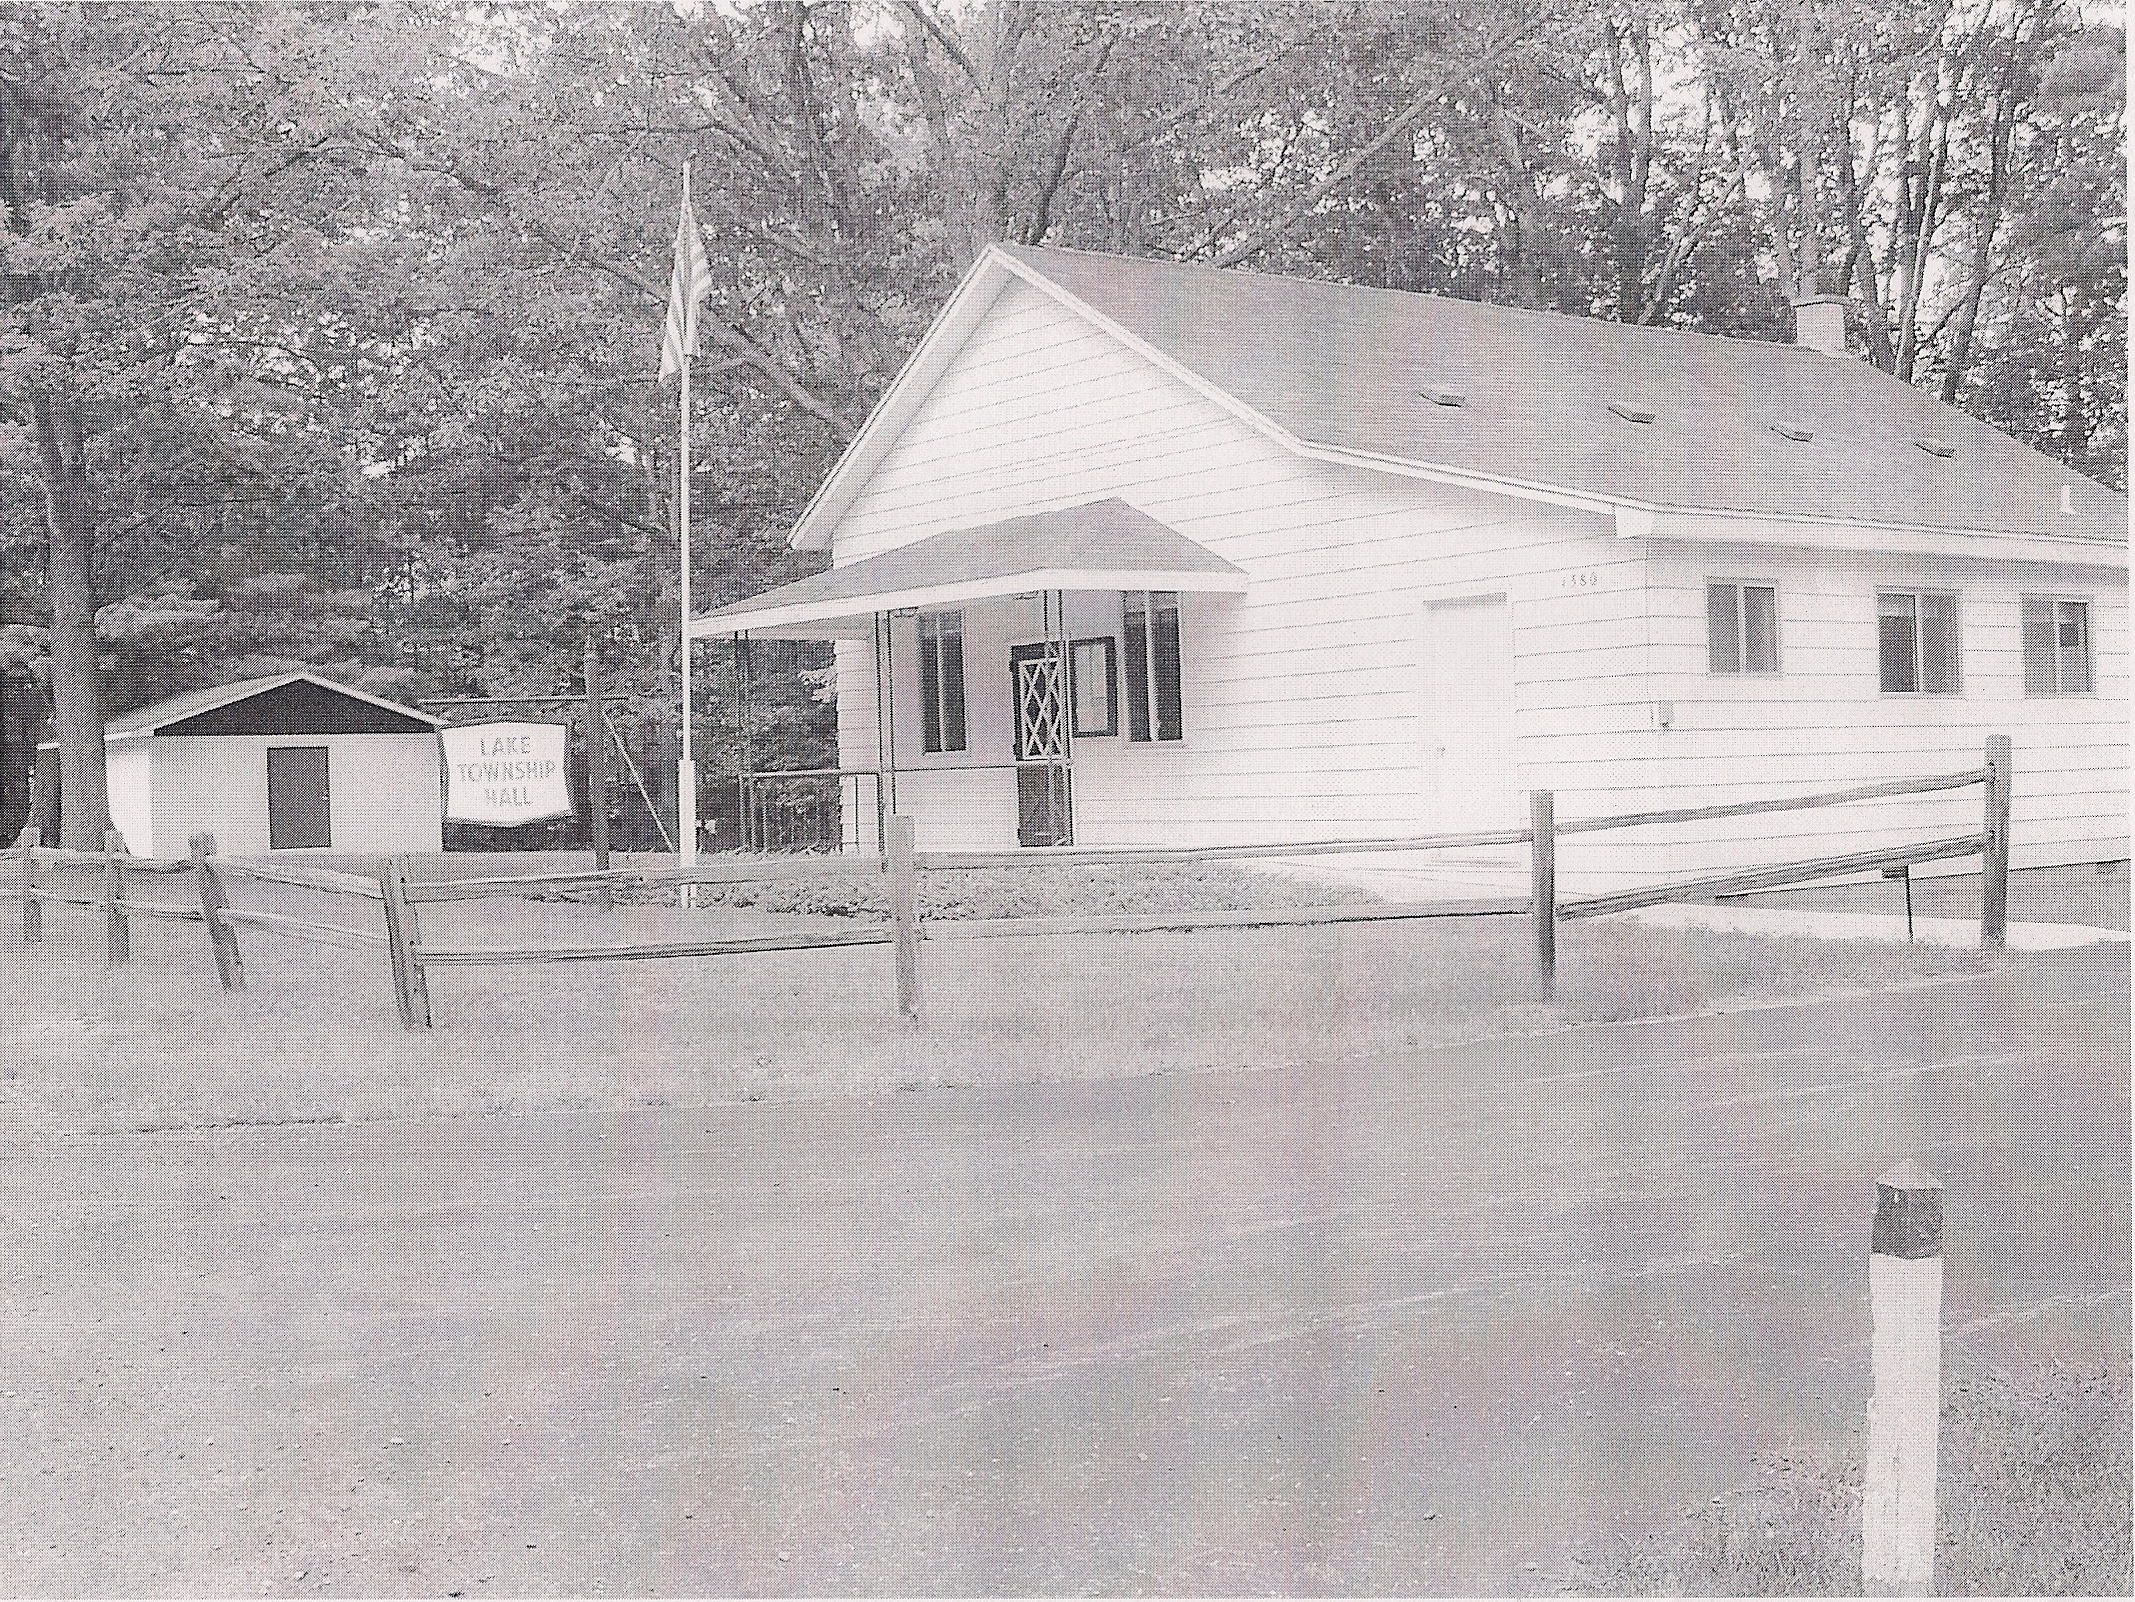 Lake Township Hall